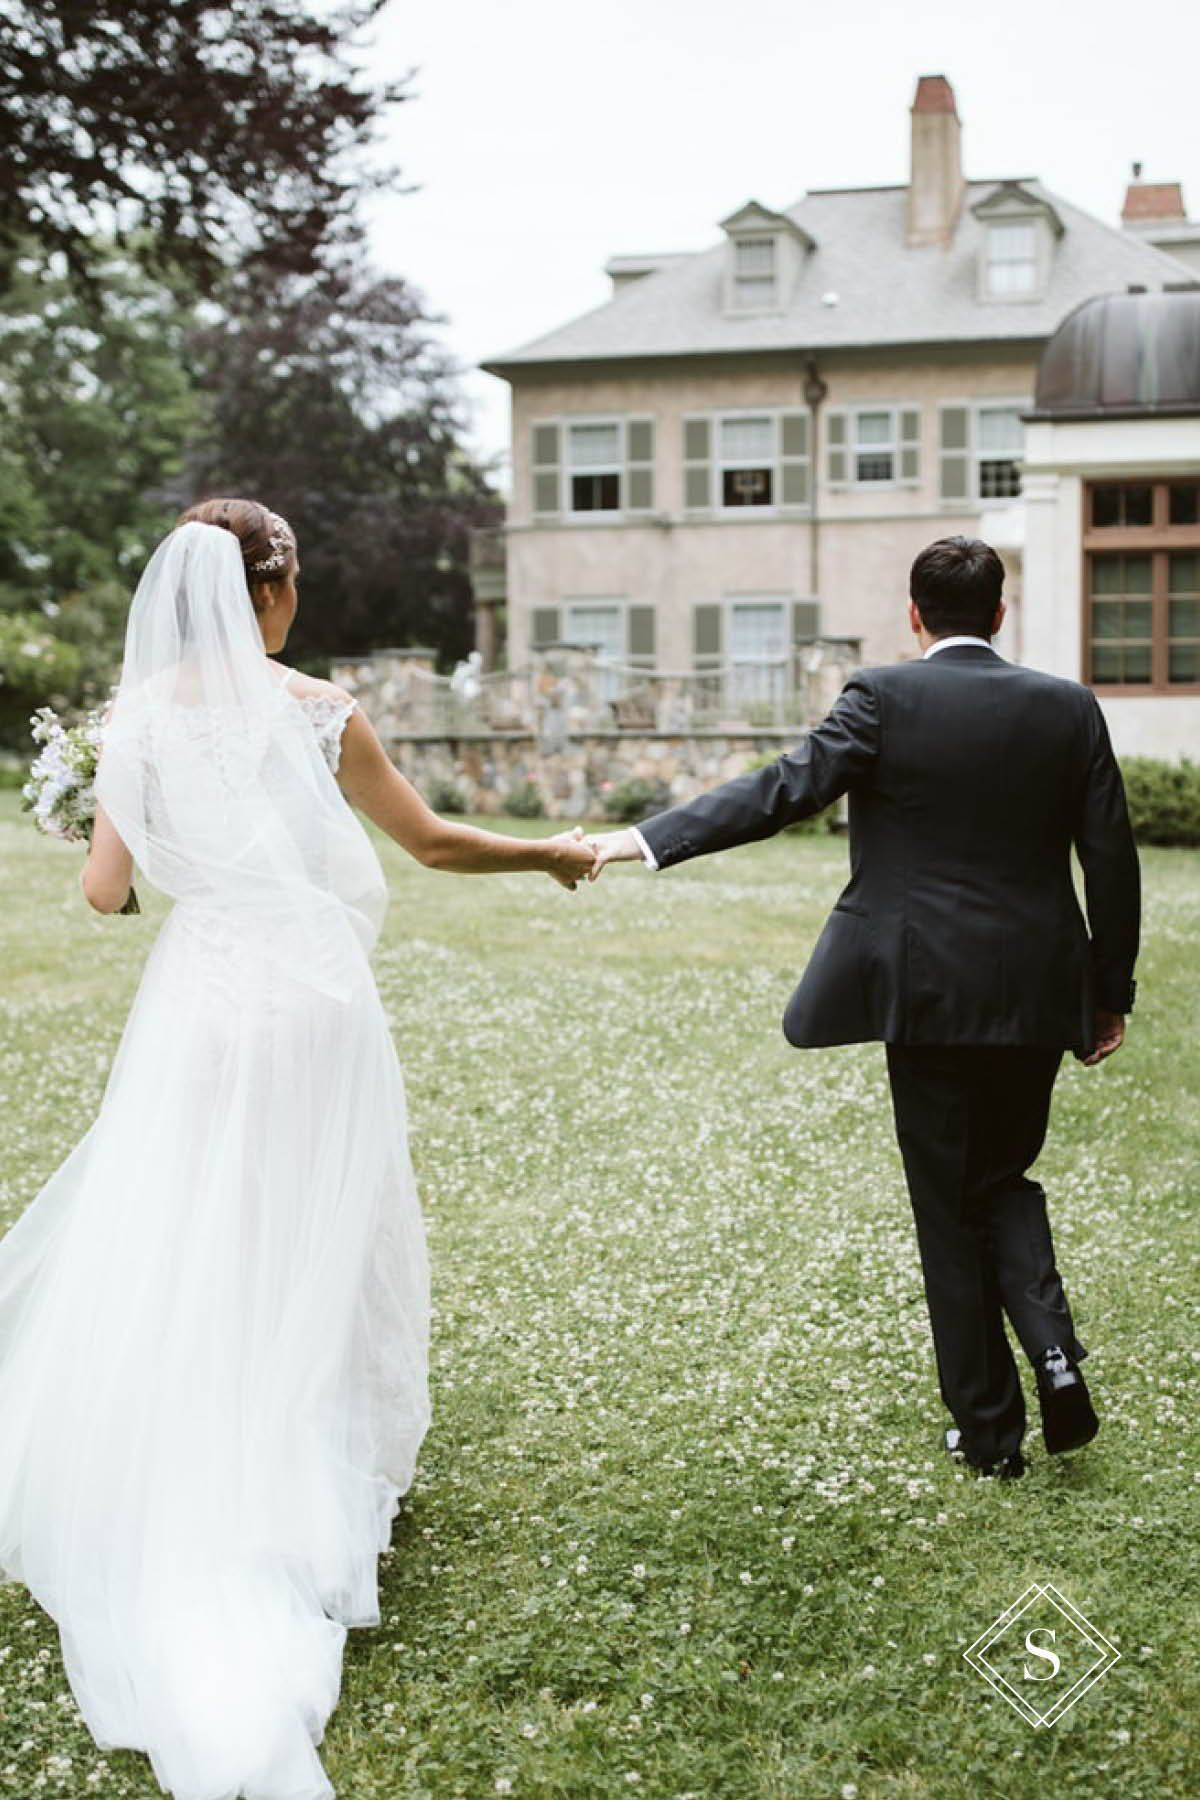 Top 20 Most Beautiful Wedding Venues in the US   Beautiful ...